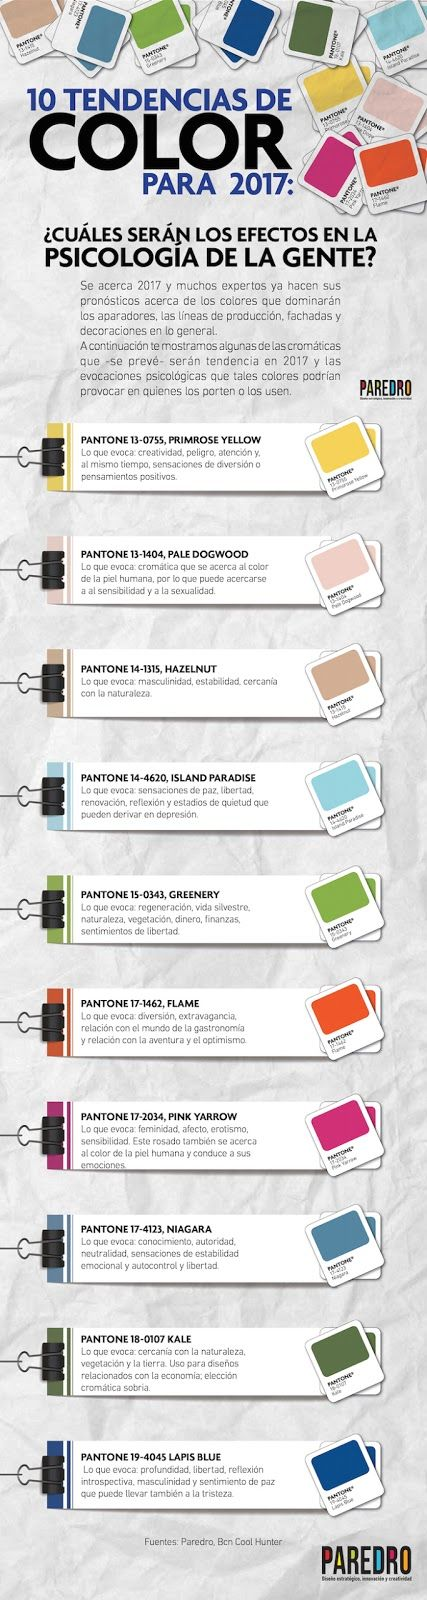 Top 10 de tendencias de color para el 2017 #Infografia #Infographic #Design